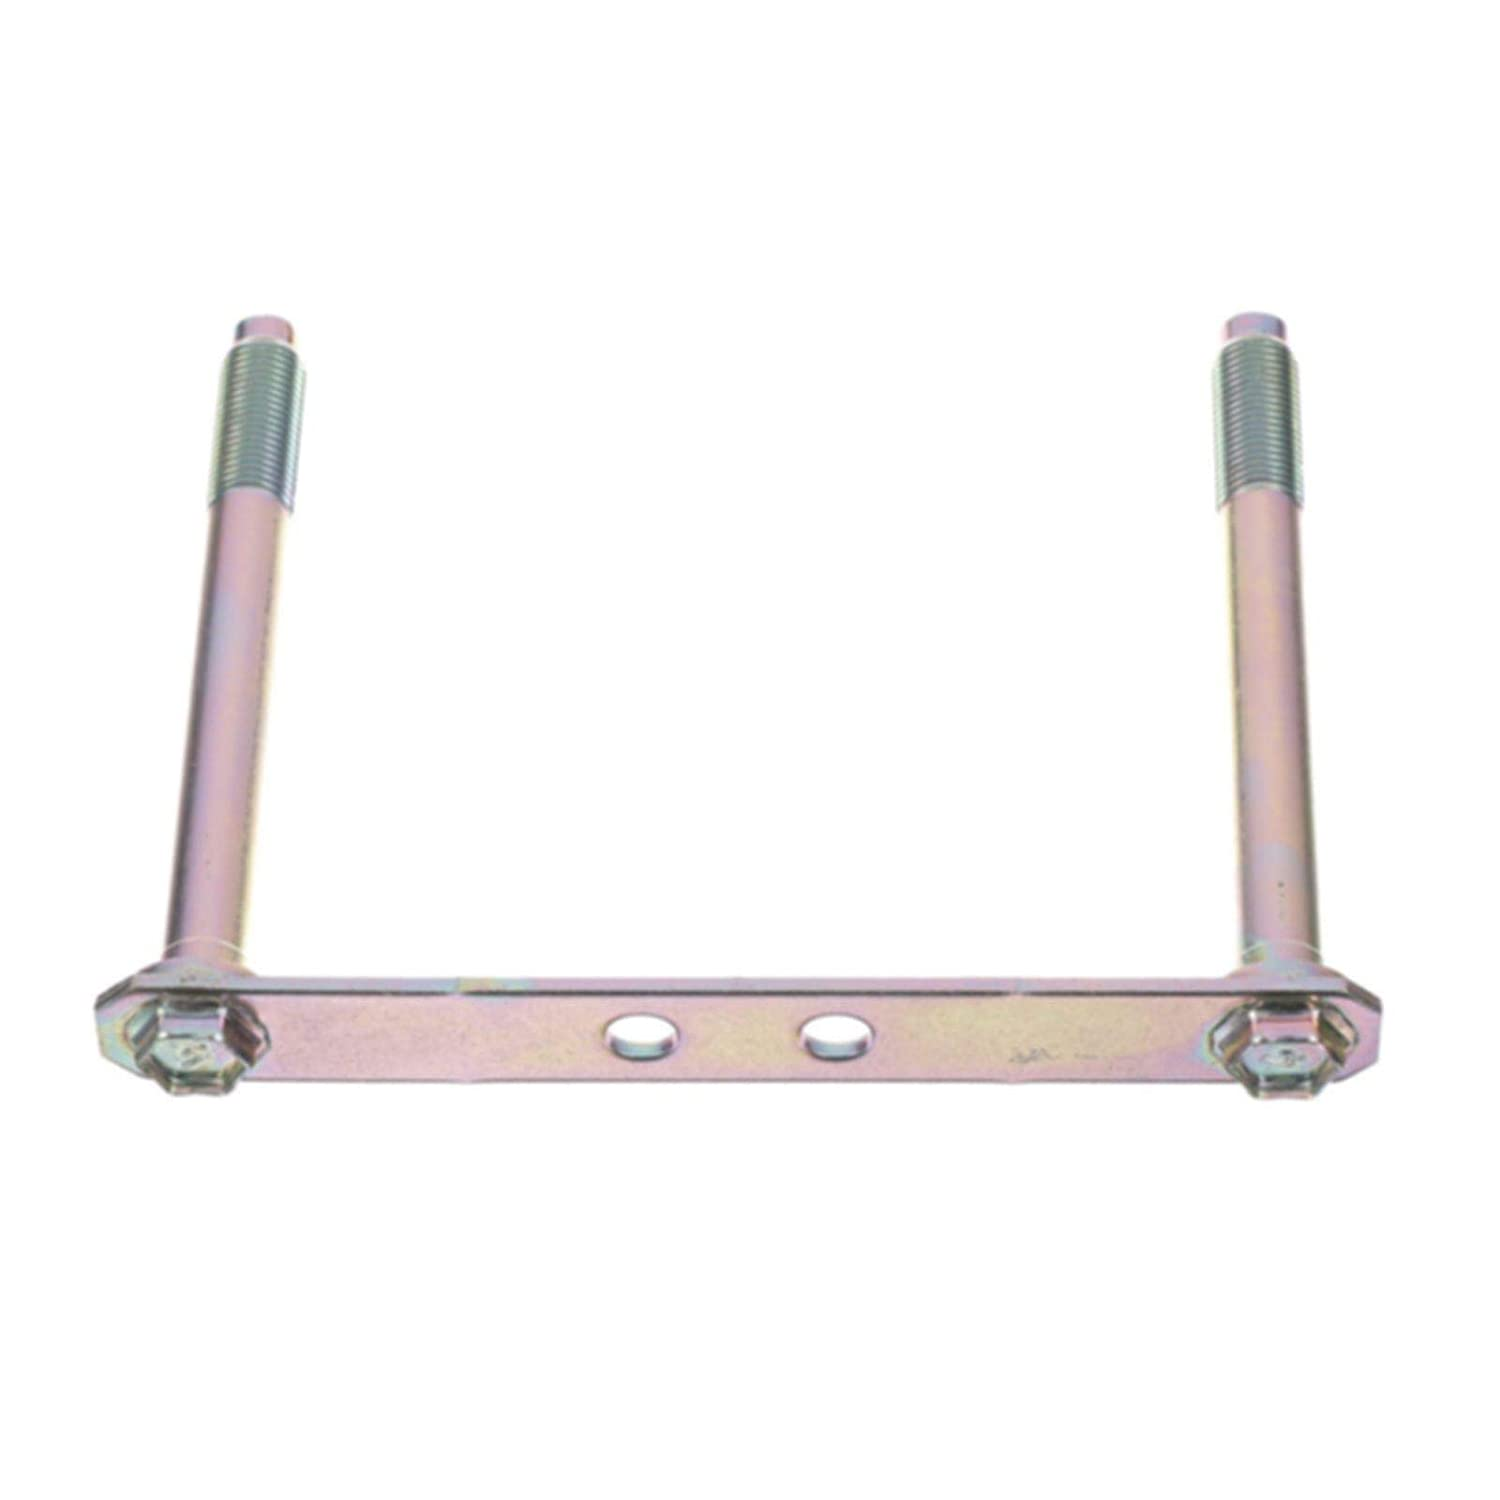 Quality 1989-1998 Nіssаn Seattle Mall 240SX Mounting 1 year warranty Bolt Member Suspension